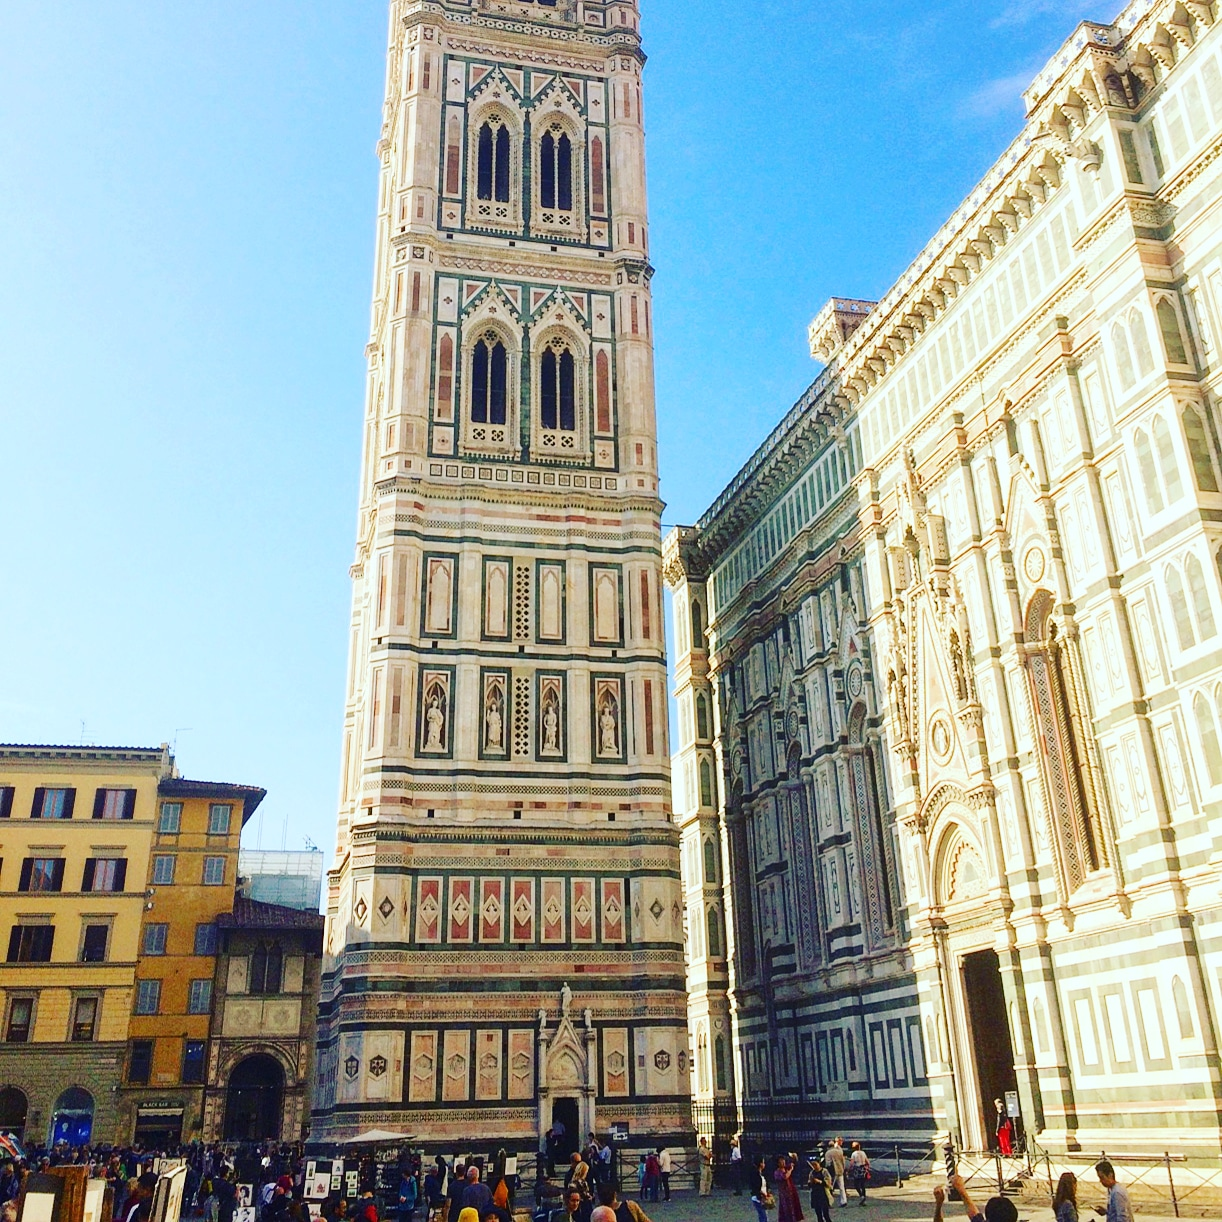 Florence, Italy: Must see or Meh?